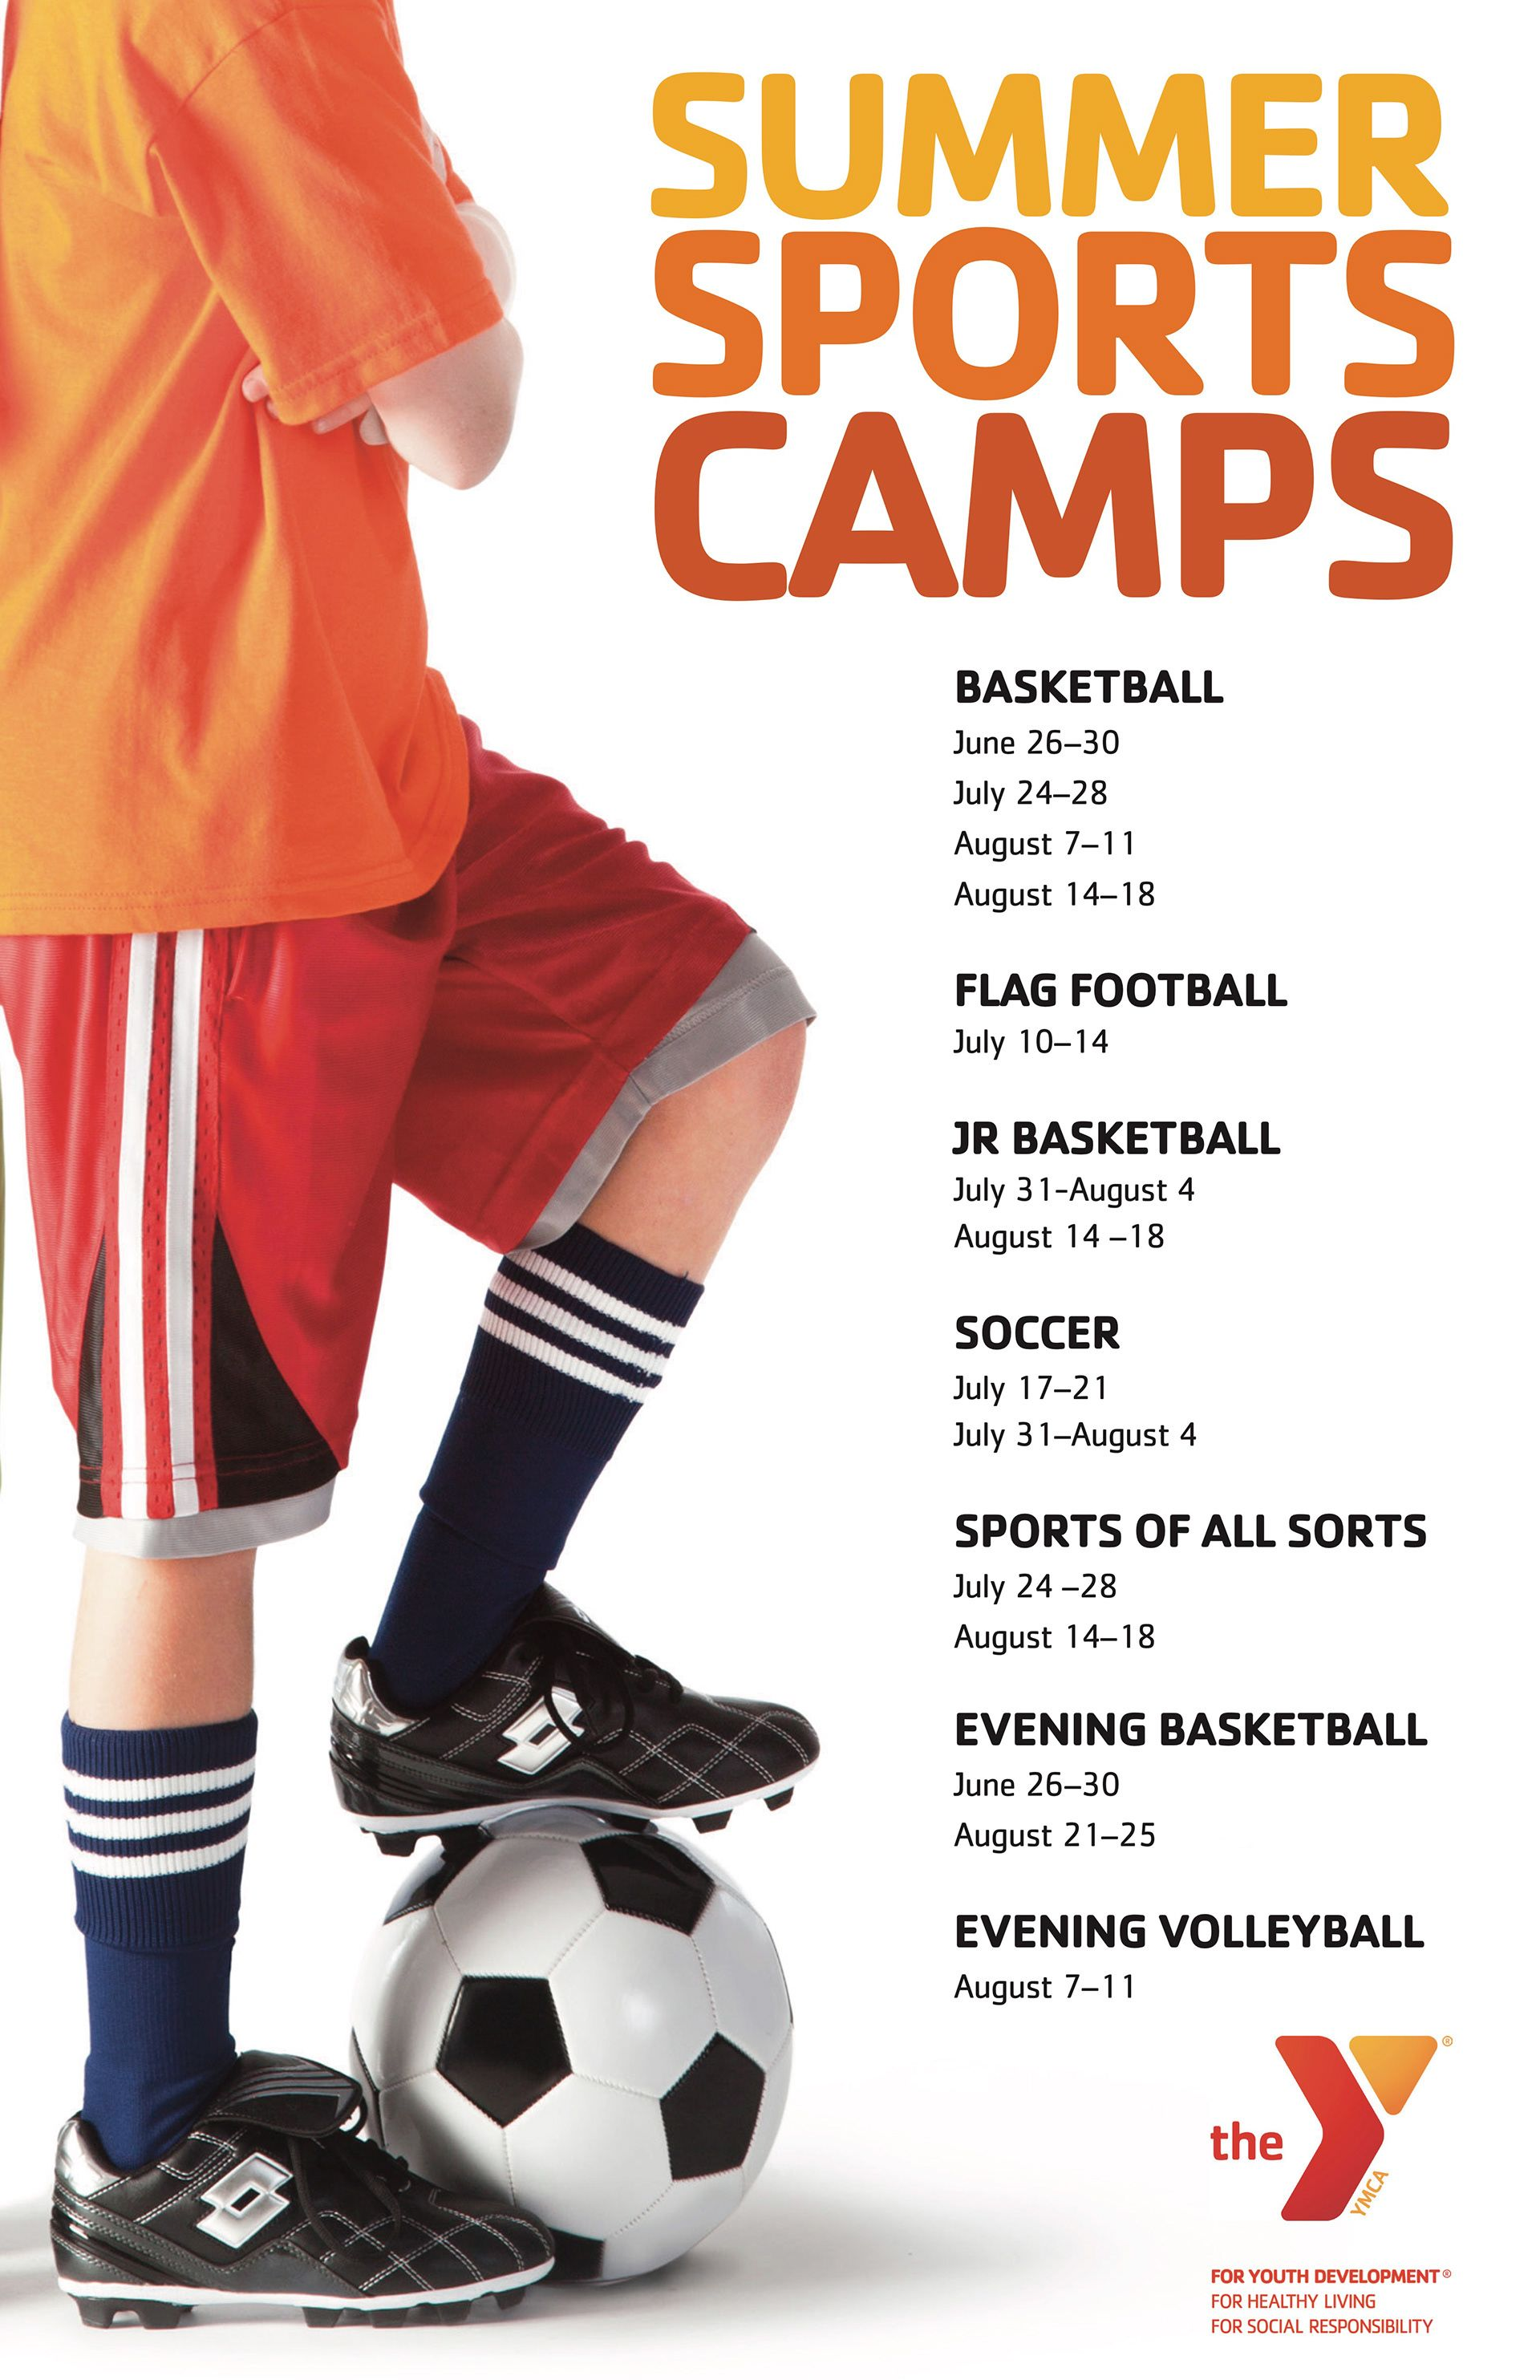 Ymca Of Columbia Willamette Poster Design Westside Youth Sports Department Summer Camps Youth Sports Summer Camp Sports Ymca